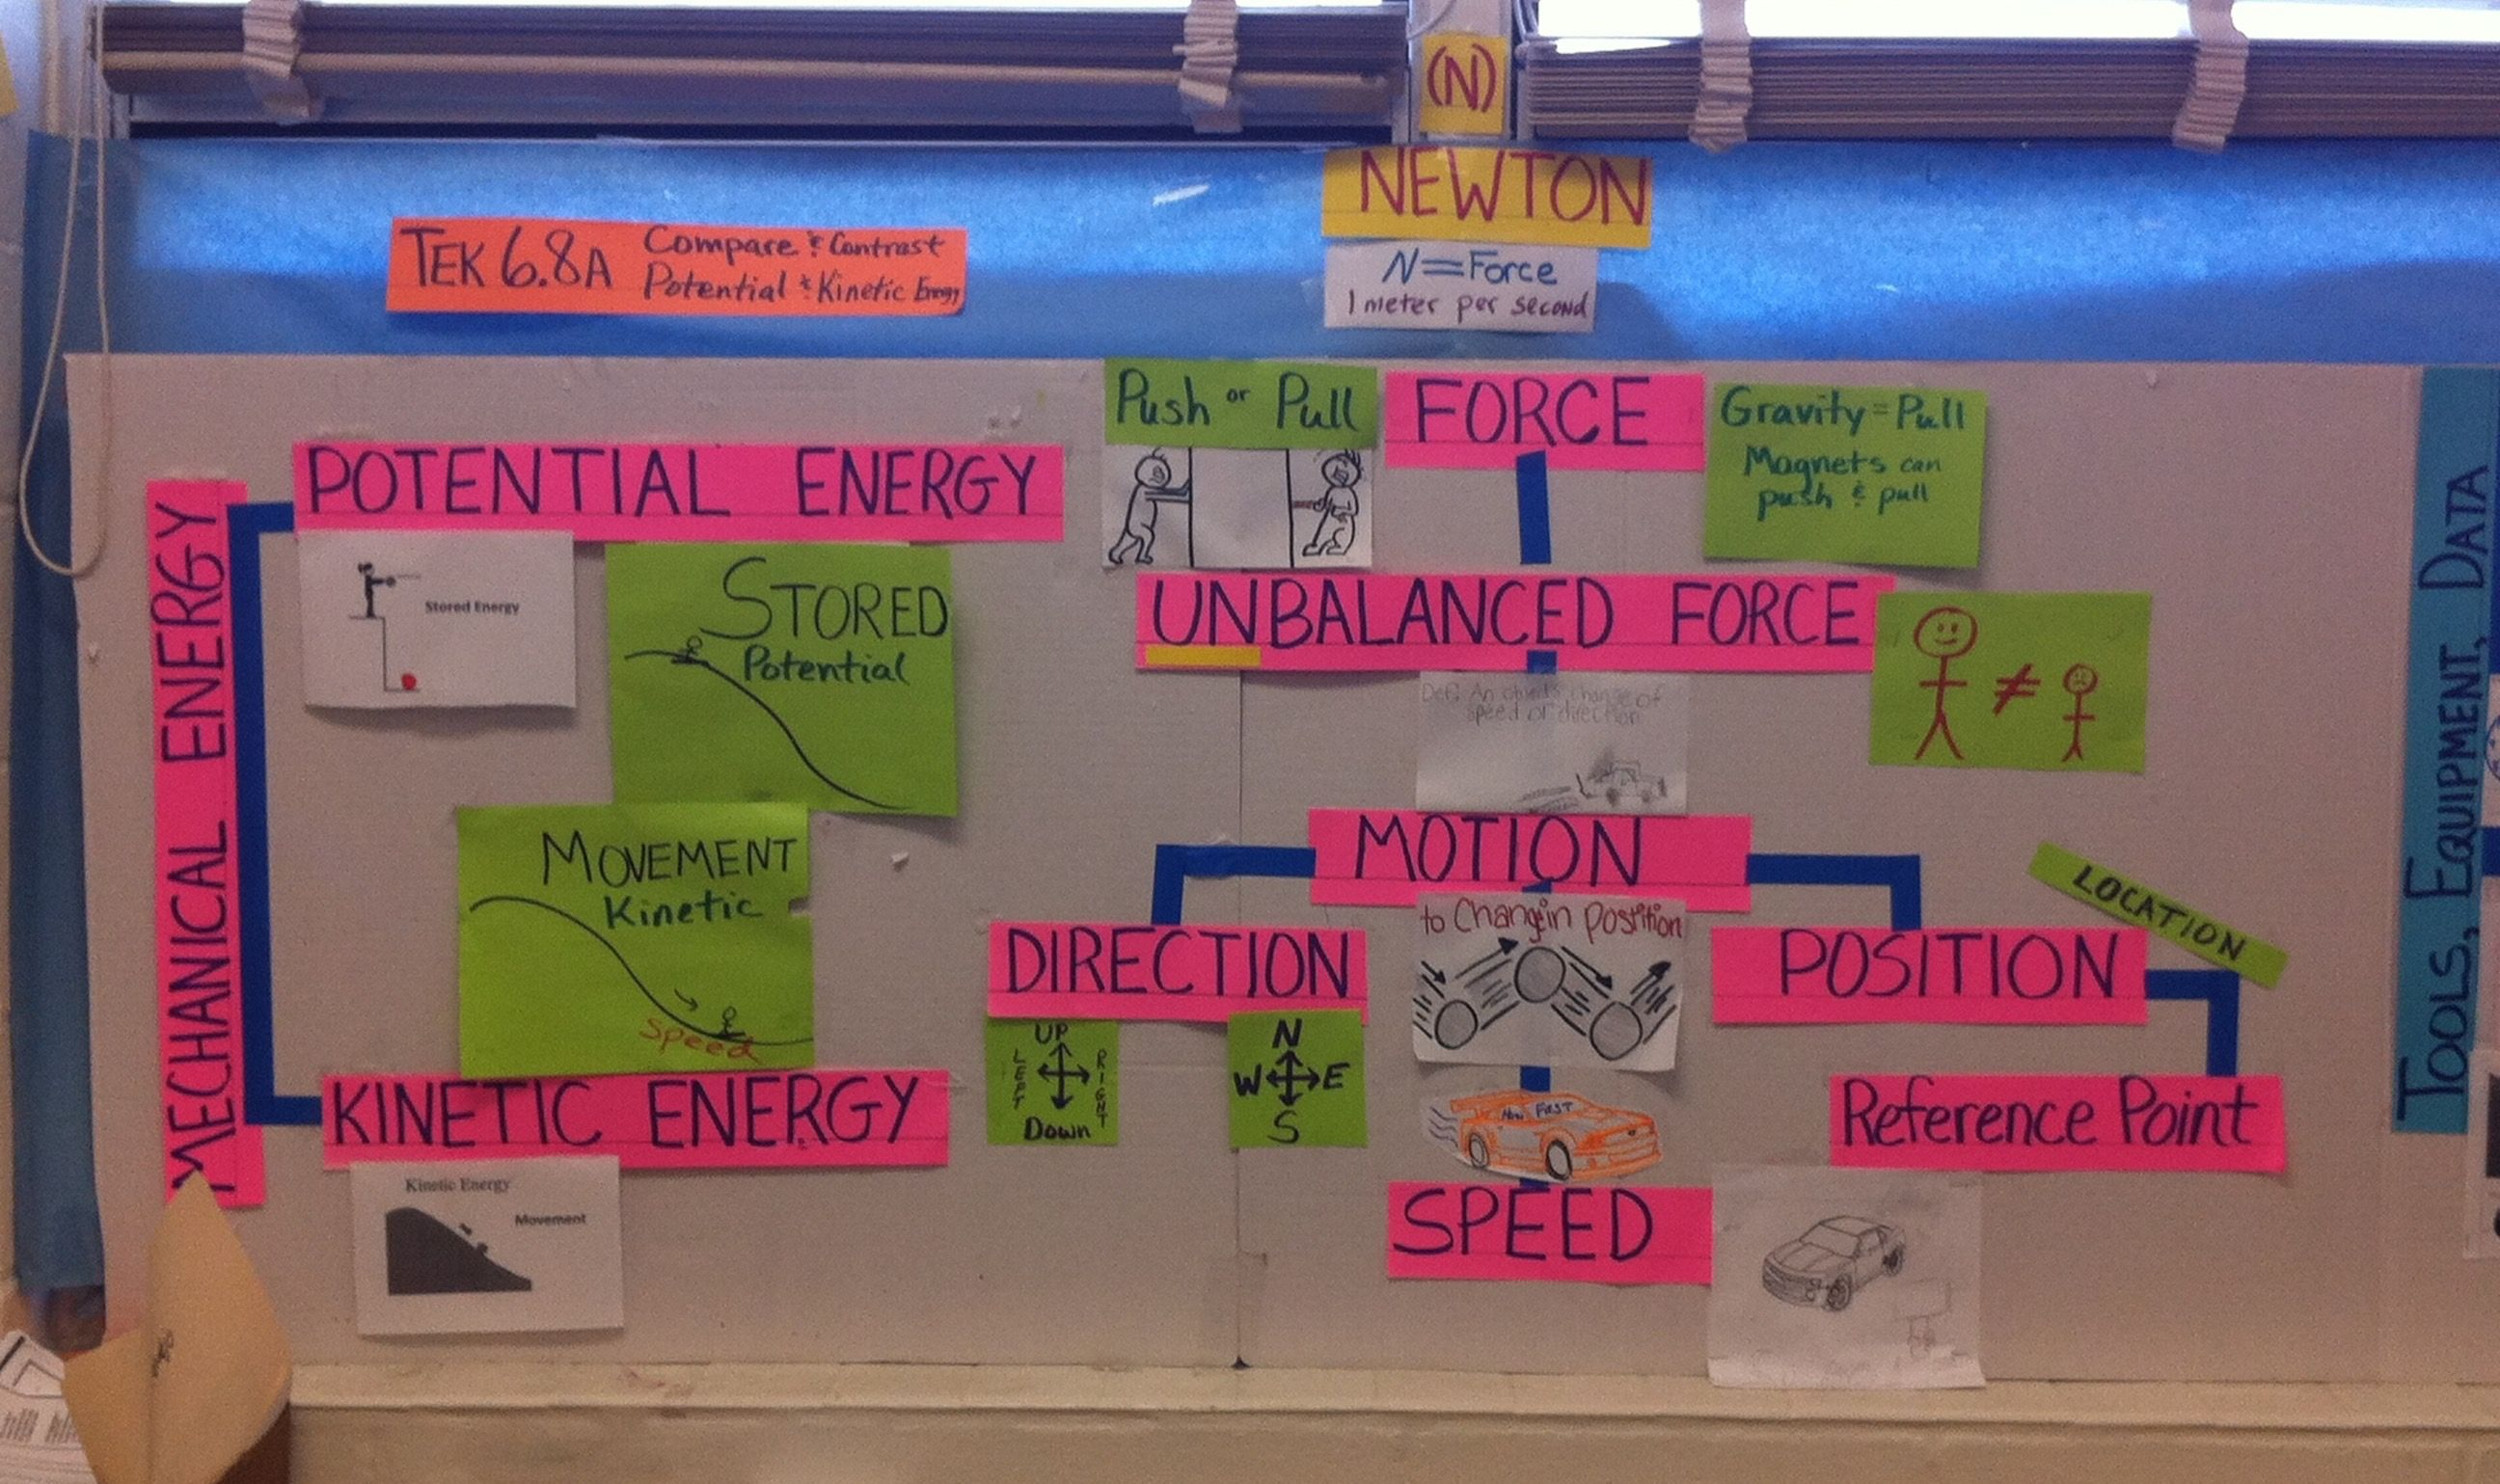 Science Teks 6 8abc Compare And Contrast Potential And